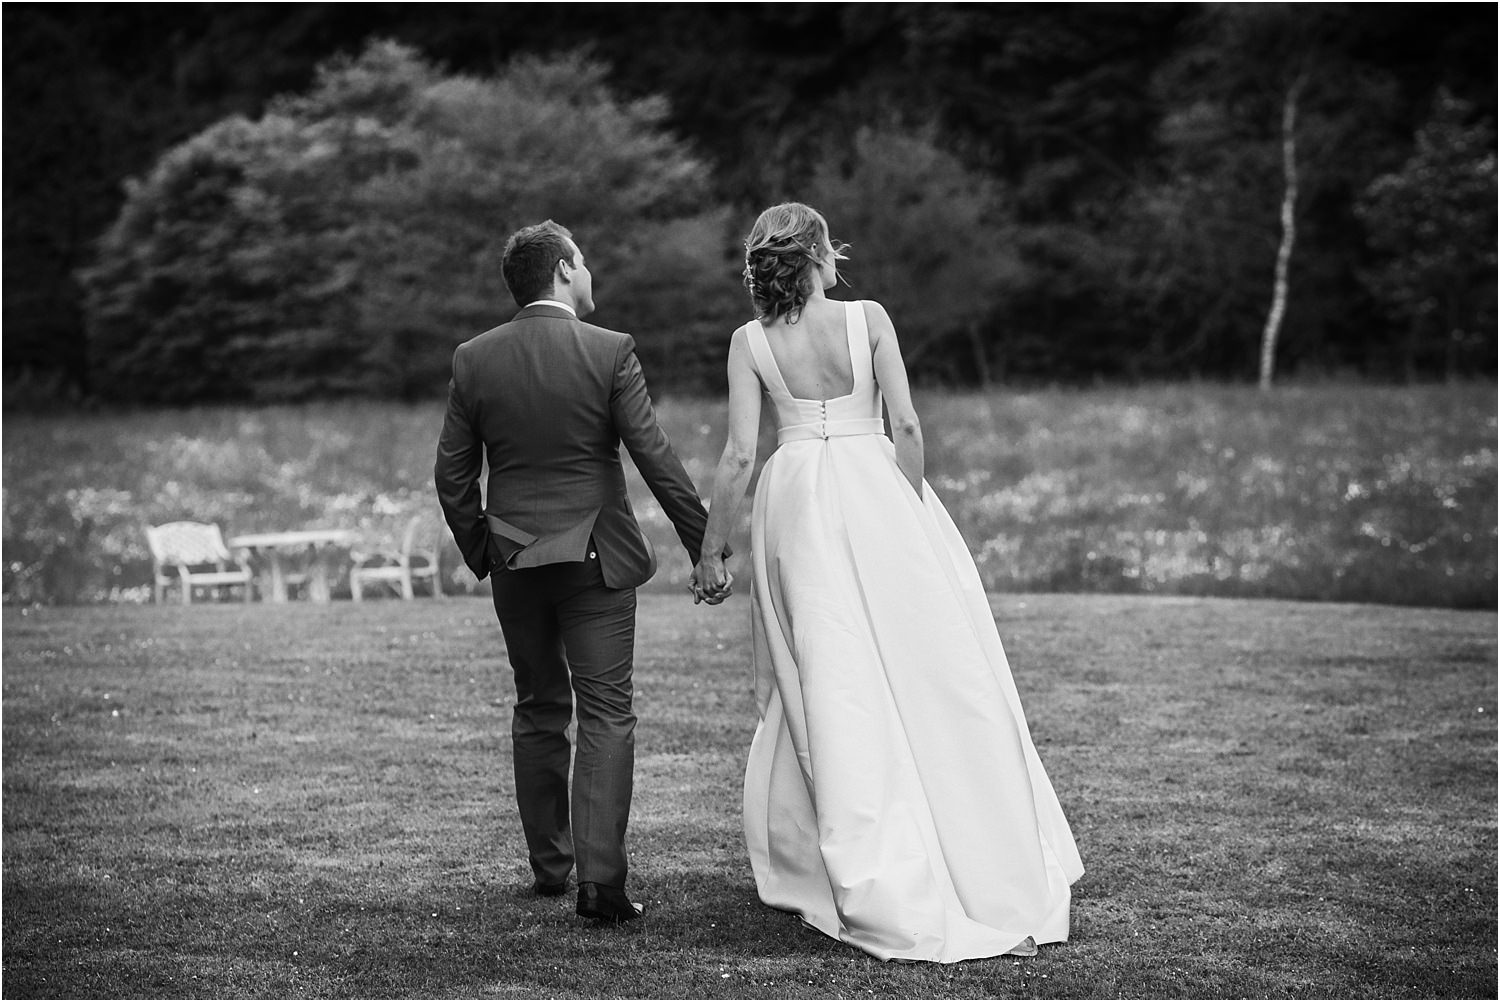 Bridea nd groom walking across the gardens at The Inn at Whitewell after their wedding reception